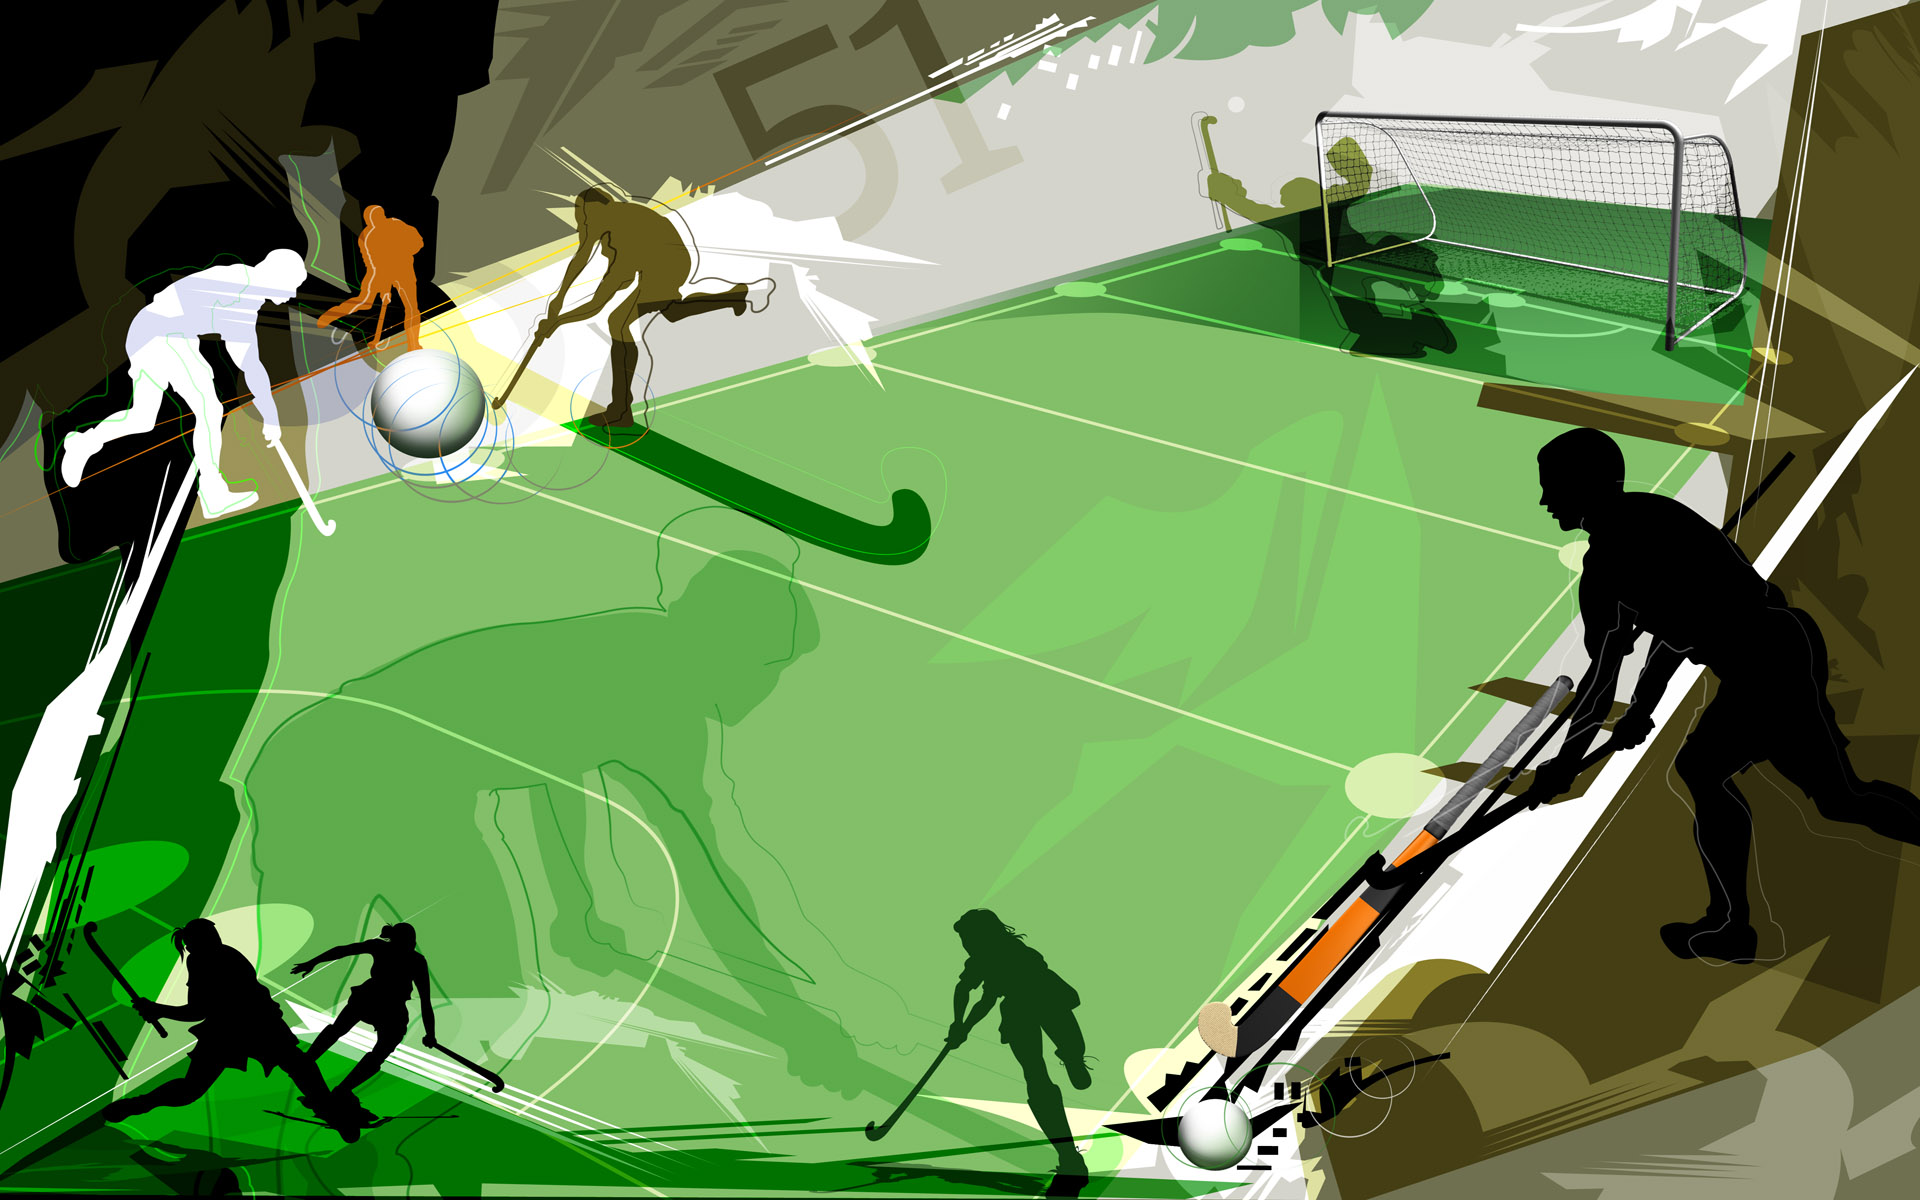 22 Hd Sports Wallpapers Backgrounds Images: Field Hockey Wallpaper